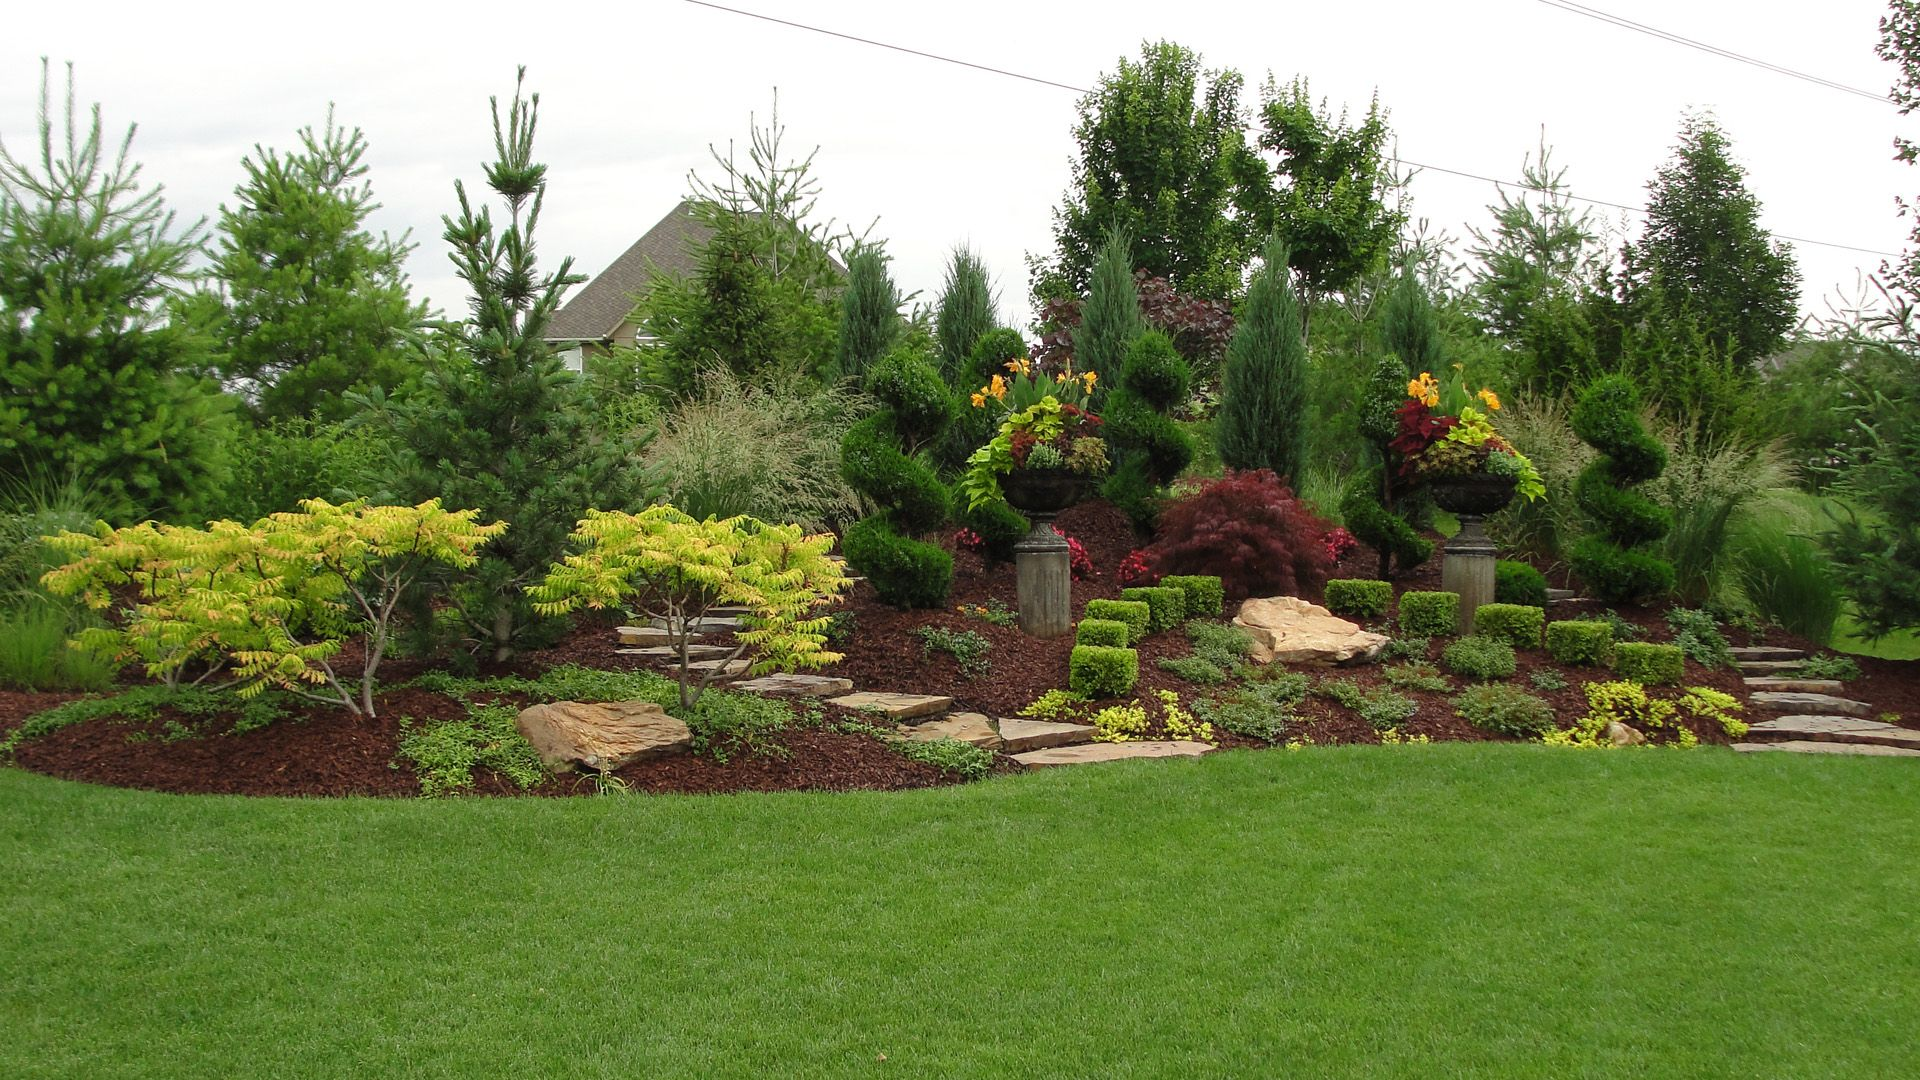 Garden trees for screening  Landscaping trees are one of the primary building blocks of a